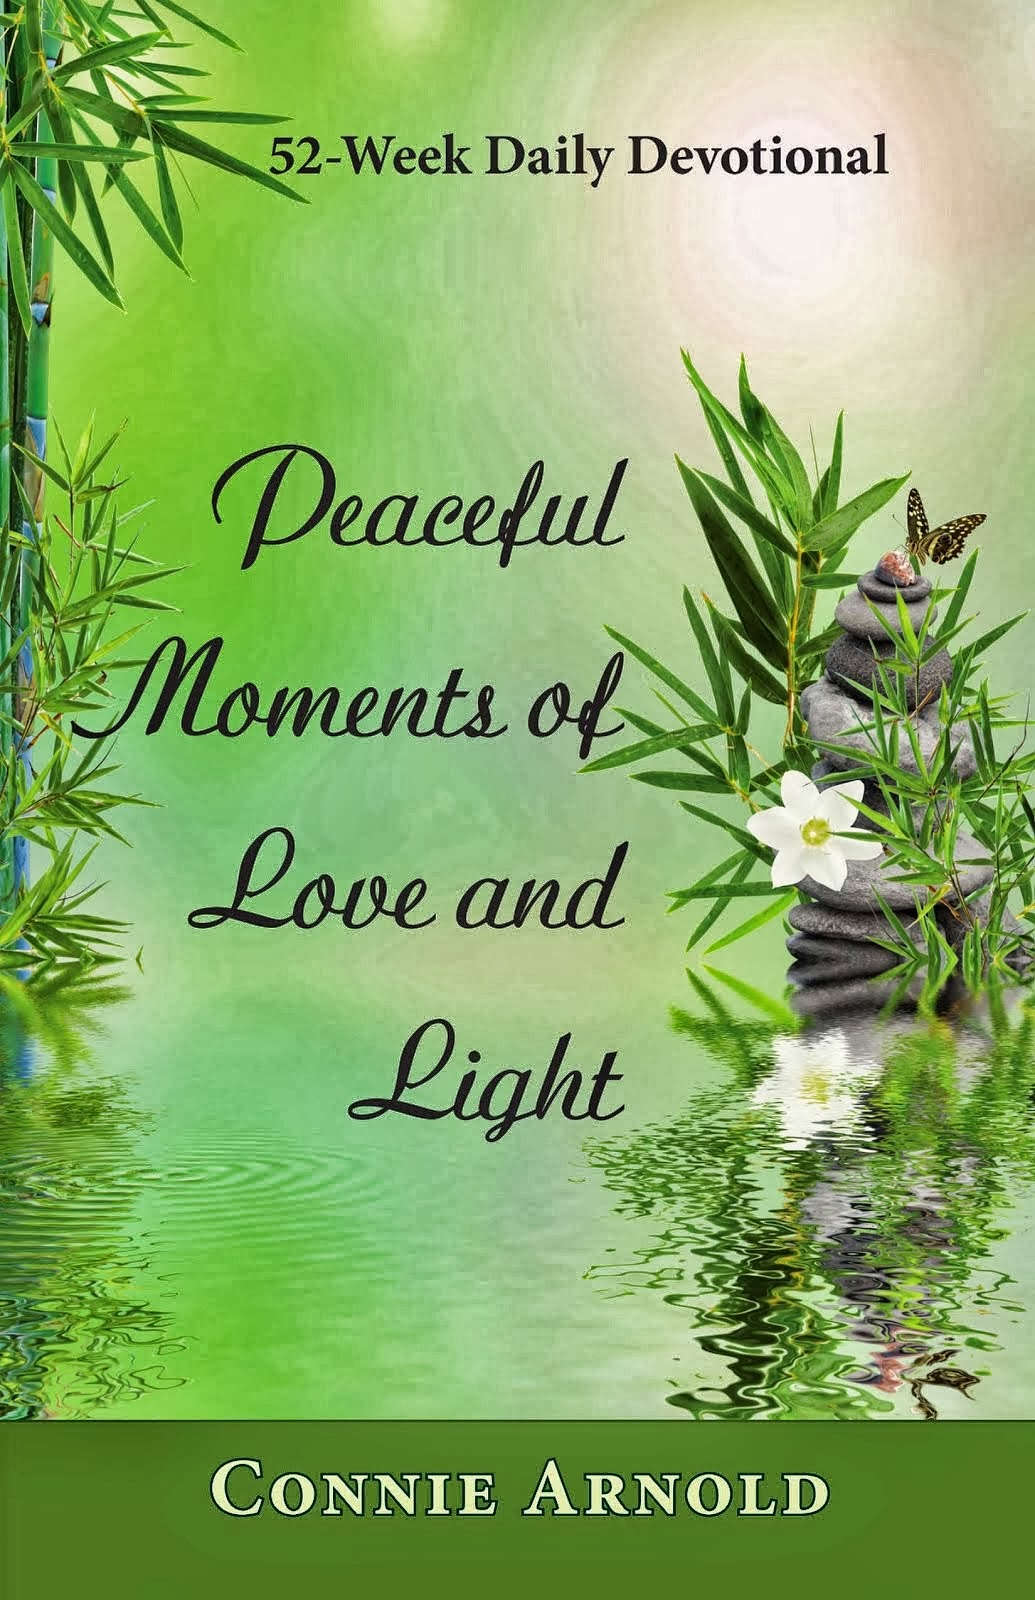 Peaceful Moments of Love and Light